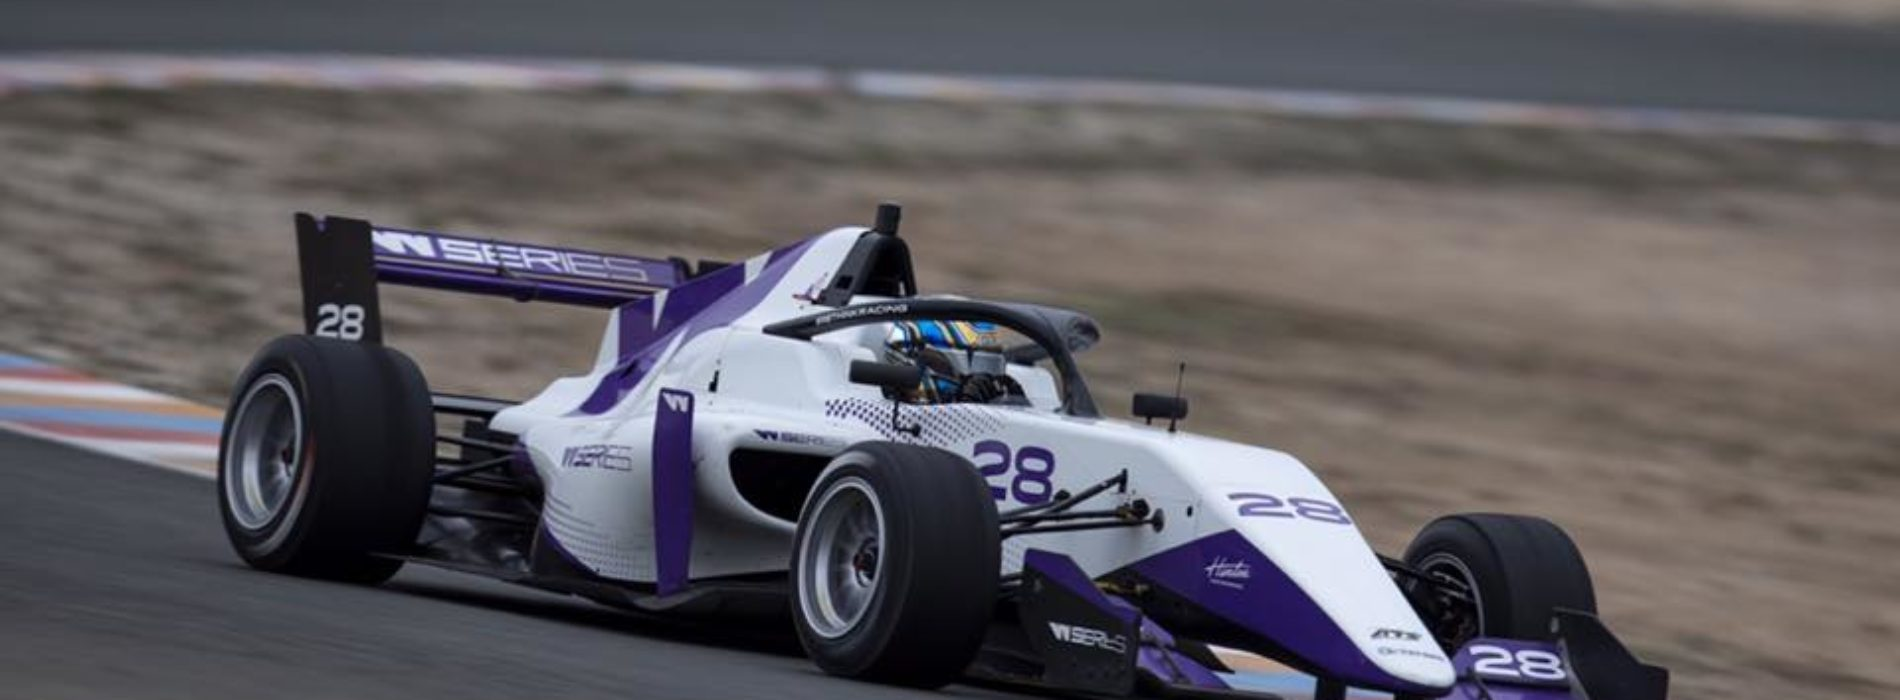 Chelsea Herbert vies for selection in testing for 2020 WSeries, Almeria, Spain